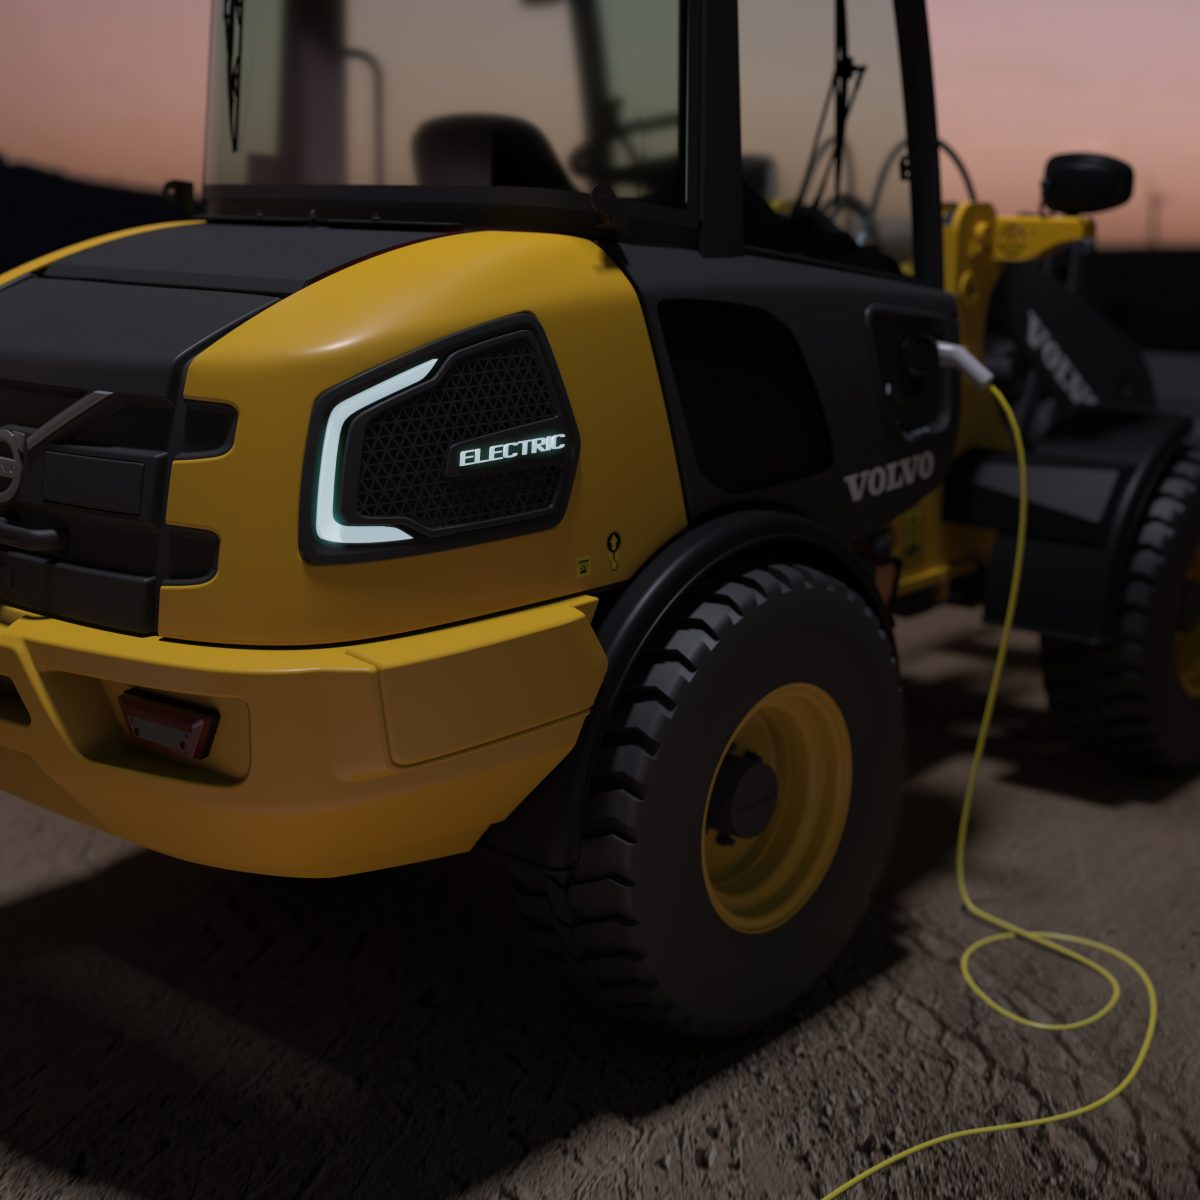 Volvo looks to an Electric Construction Future at bauma 2019